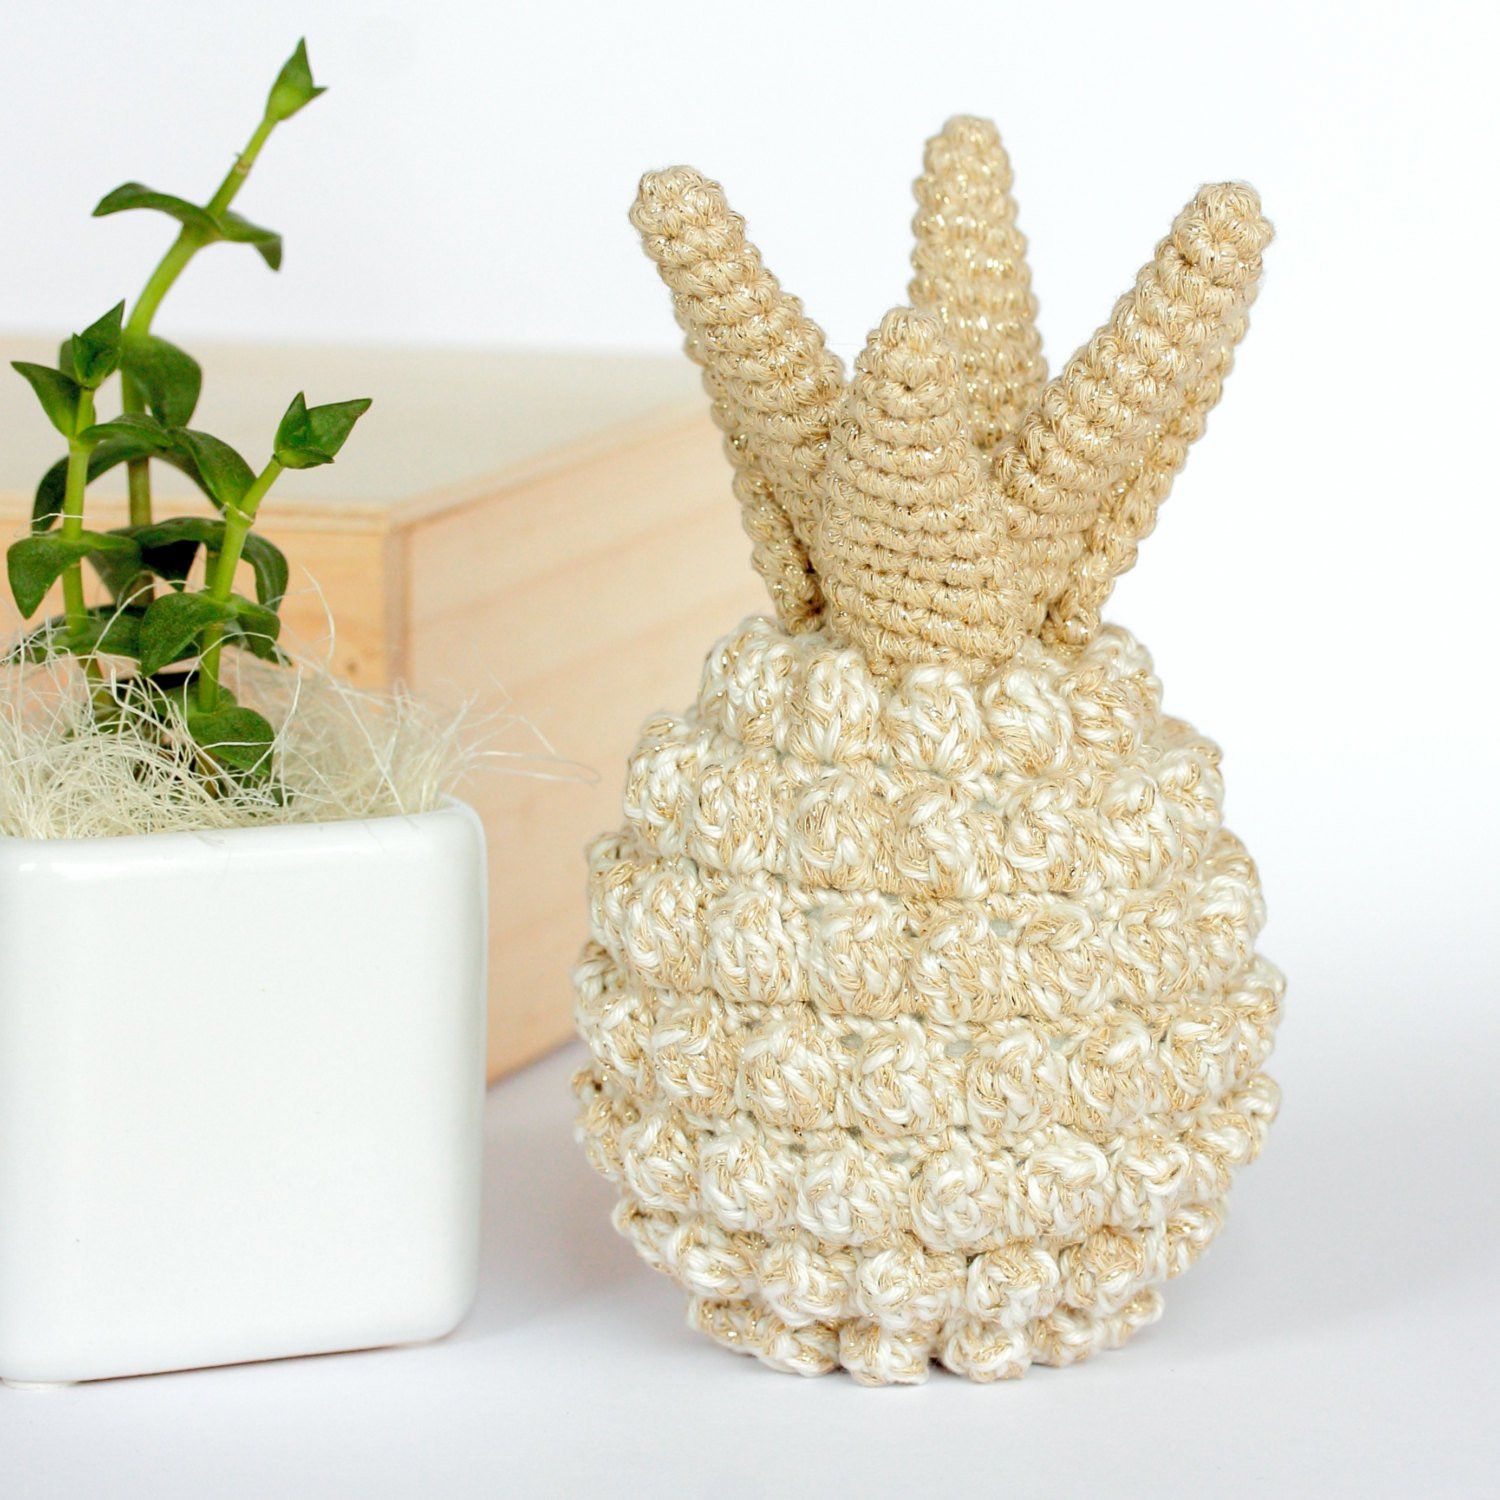 Pineapple Home Accessories Awesome Pineapple Home Decor Crochet Pineapple Decor Pineapple by Of Contemporary 40 Models Pineapple Home Accessories